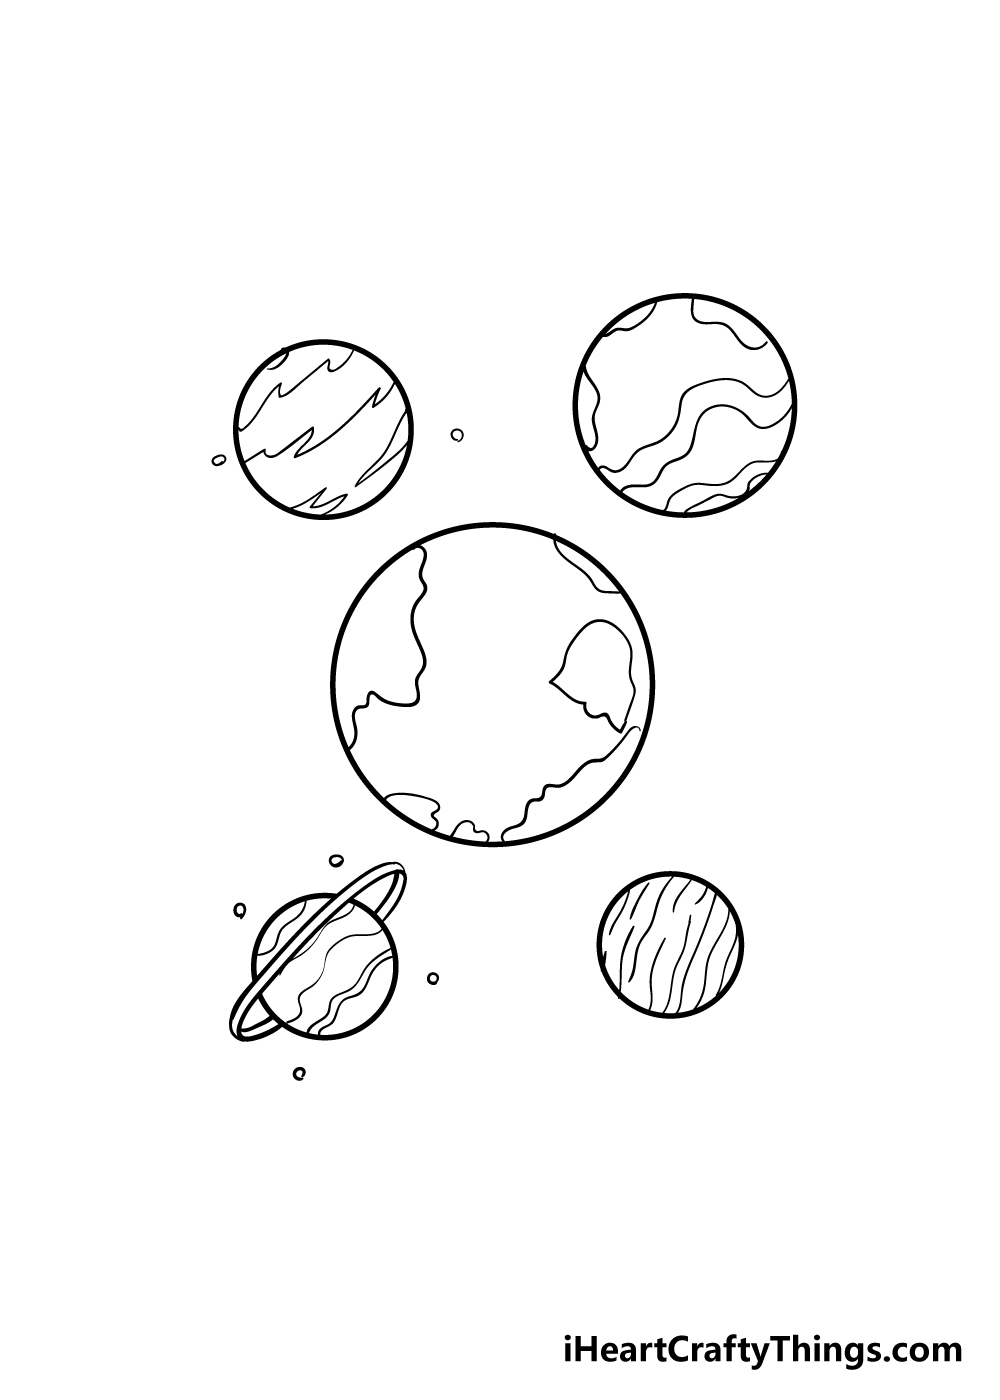 planets drawing step 5